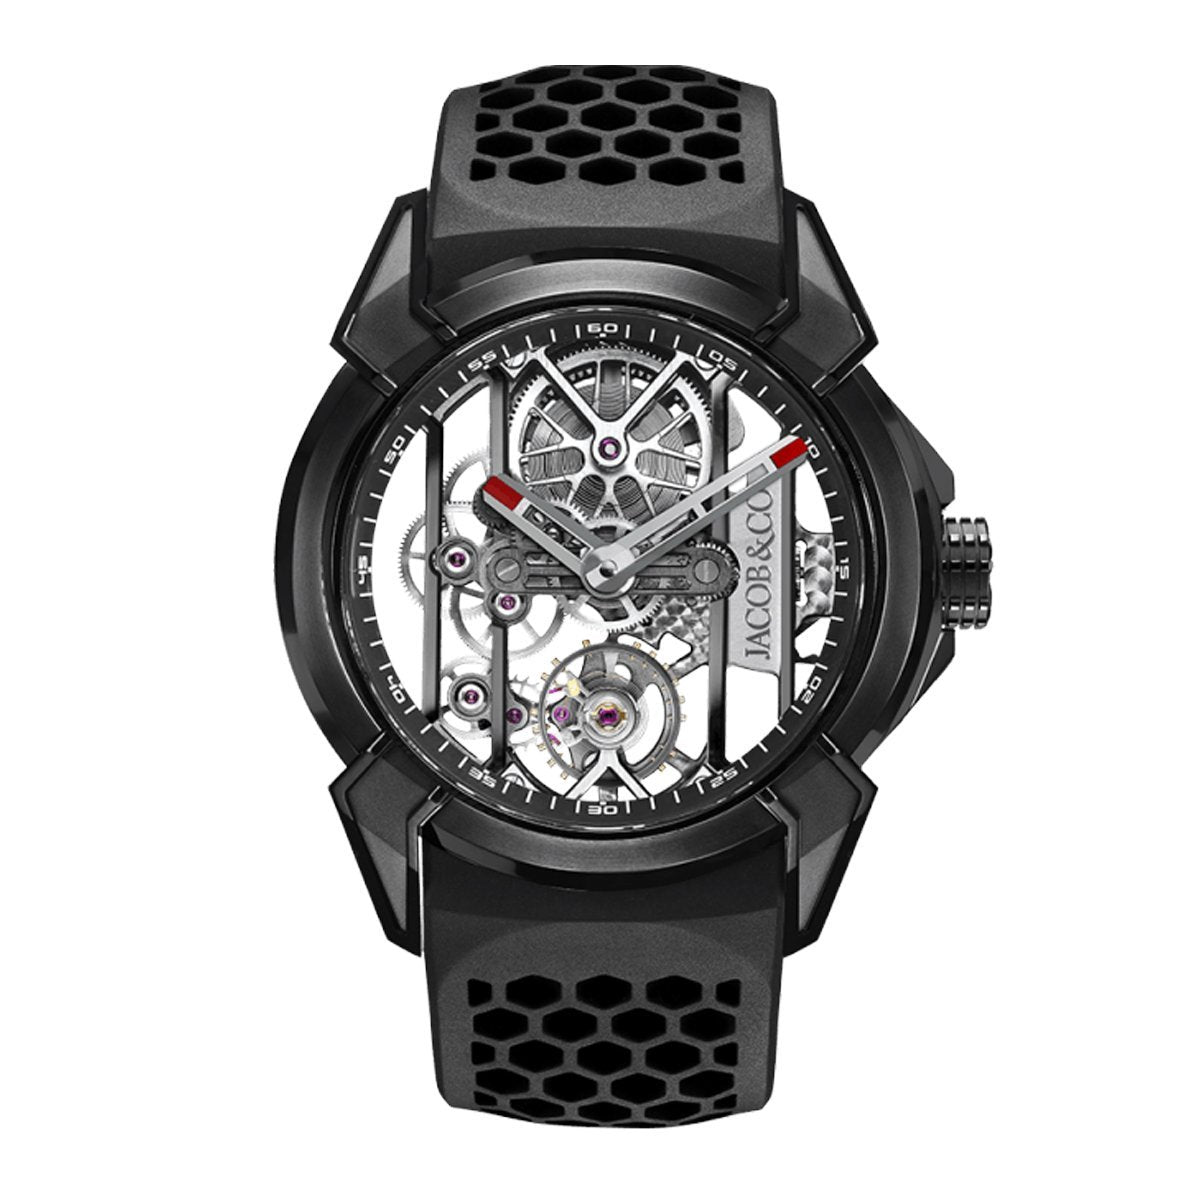 Jacob & Co. Epic X Skeleton Black DLC Titanium - Watches & Crystals